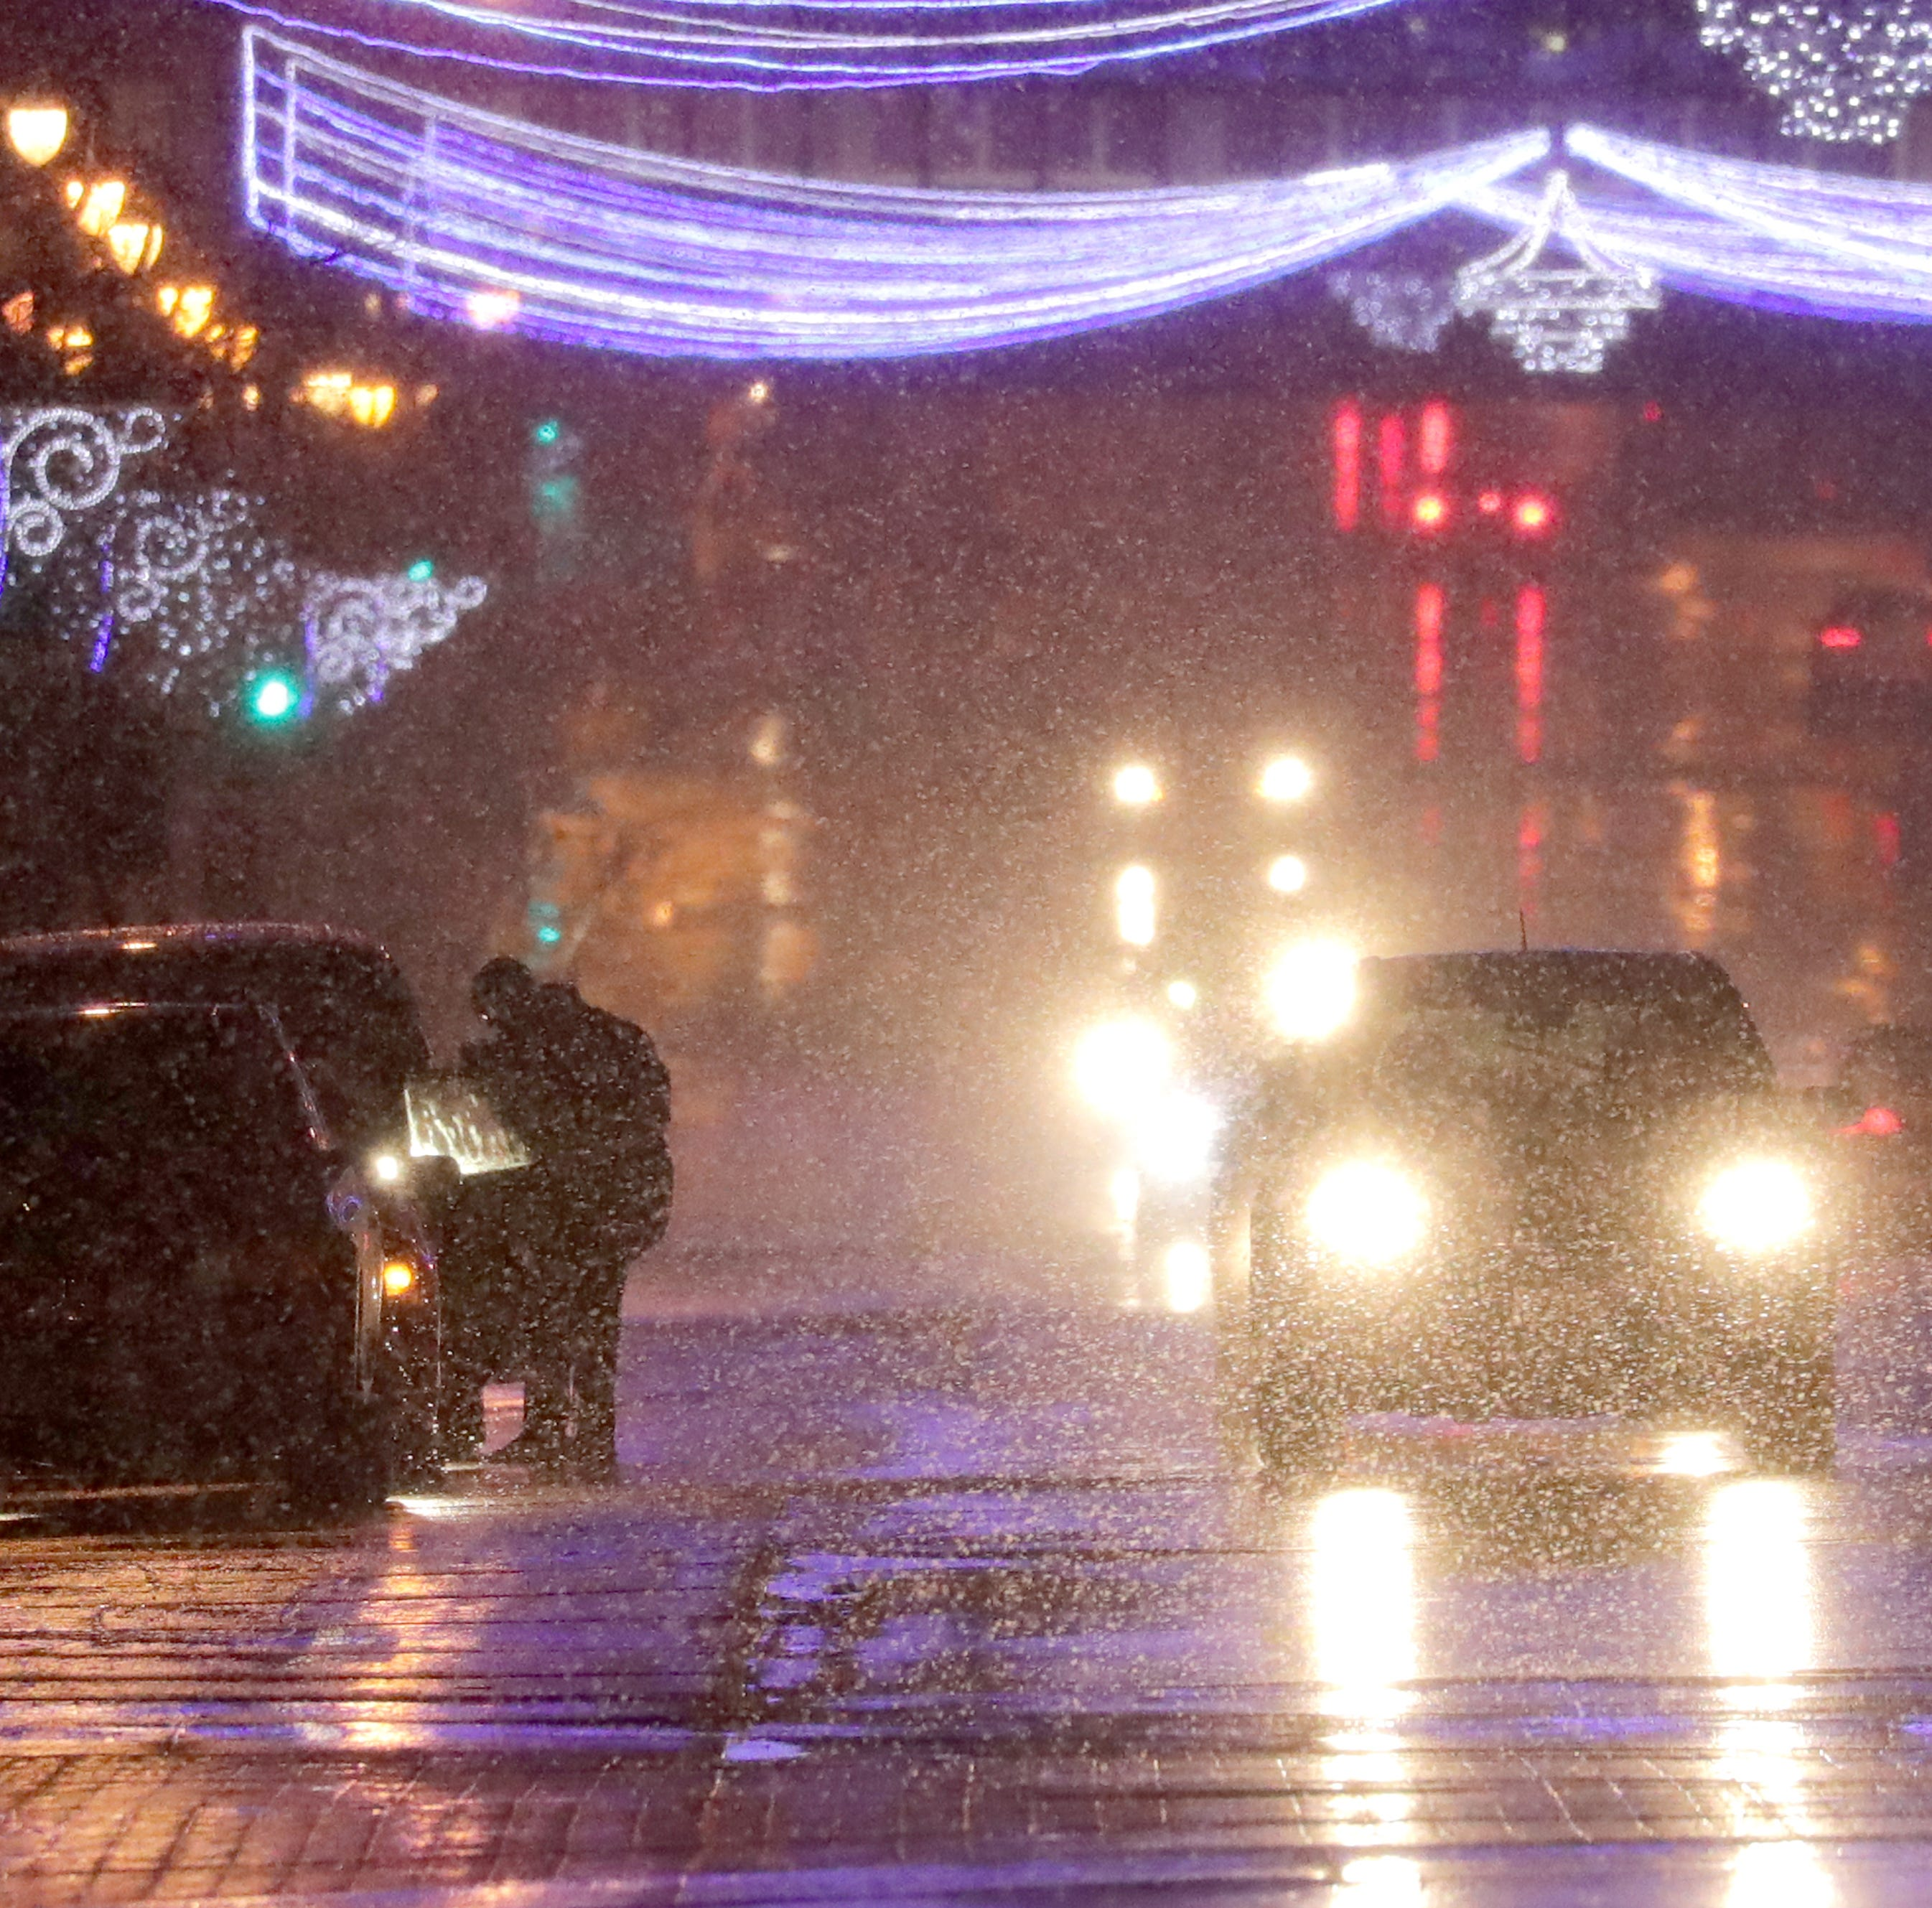 Snow showers Sunday night could linger into Monday morning, making roads slippery for commuters